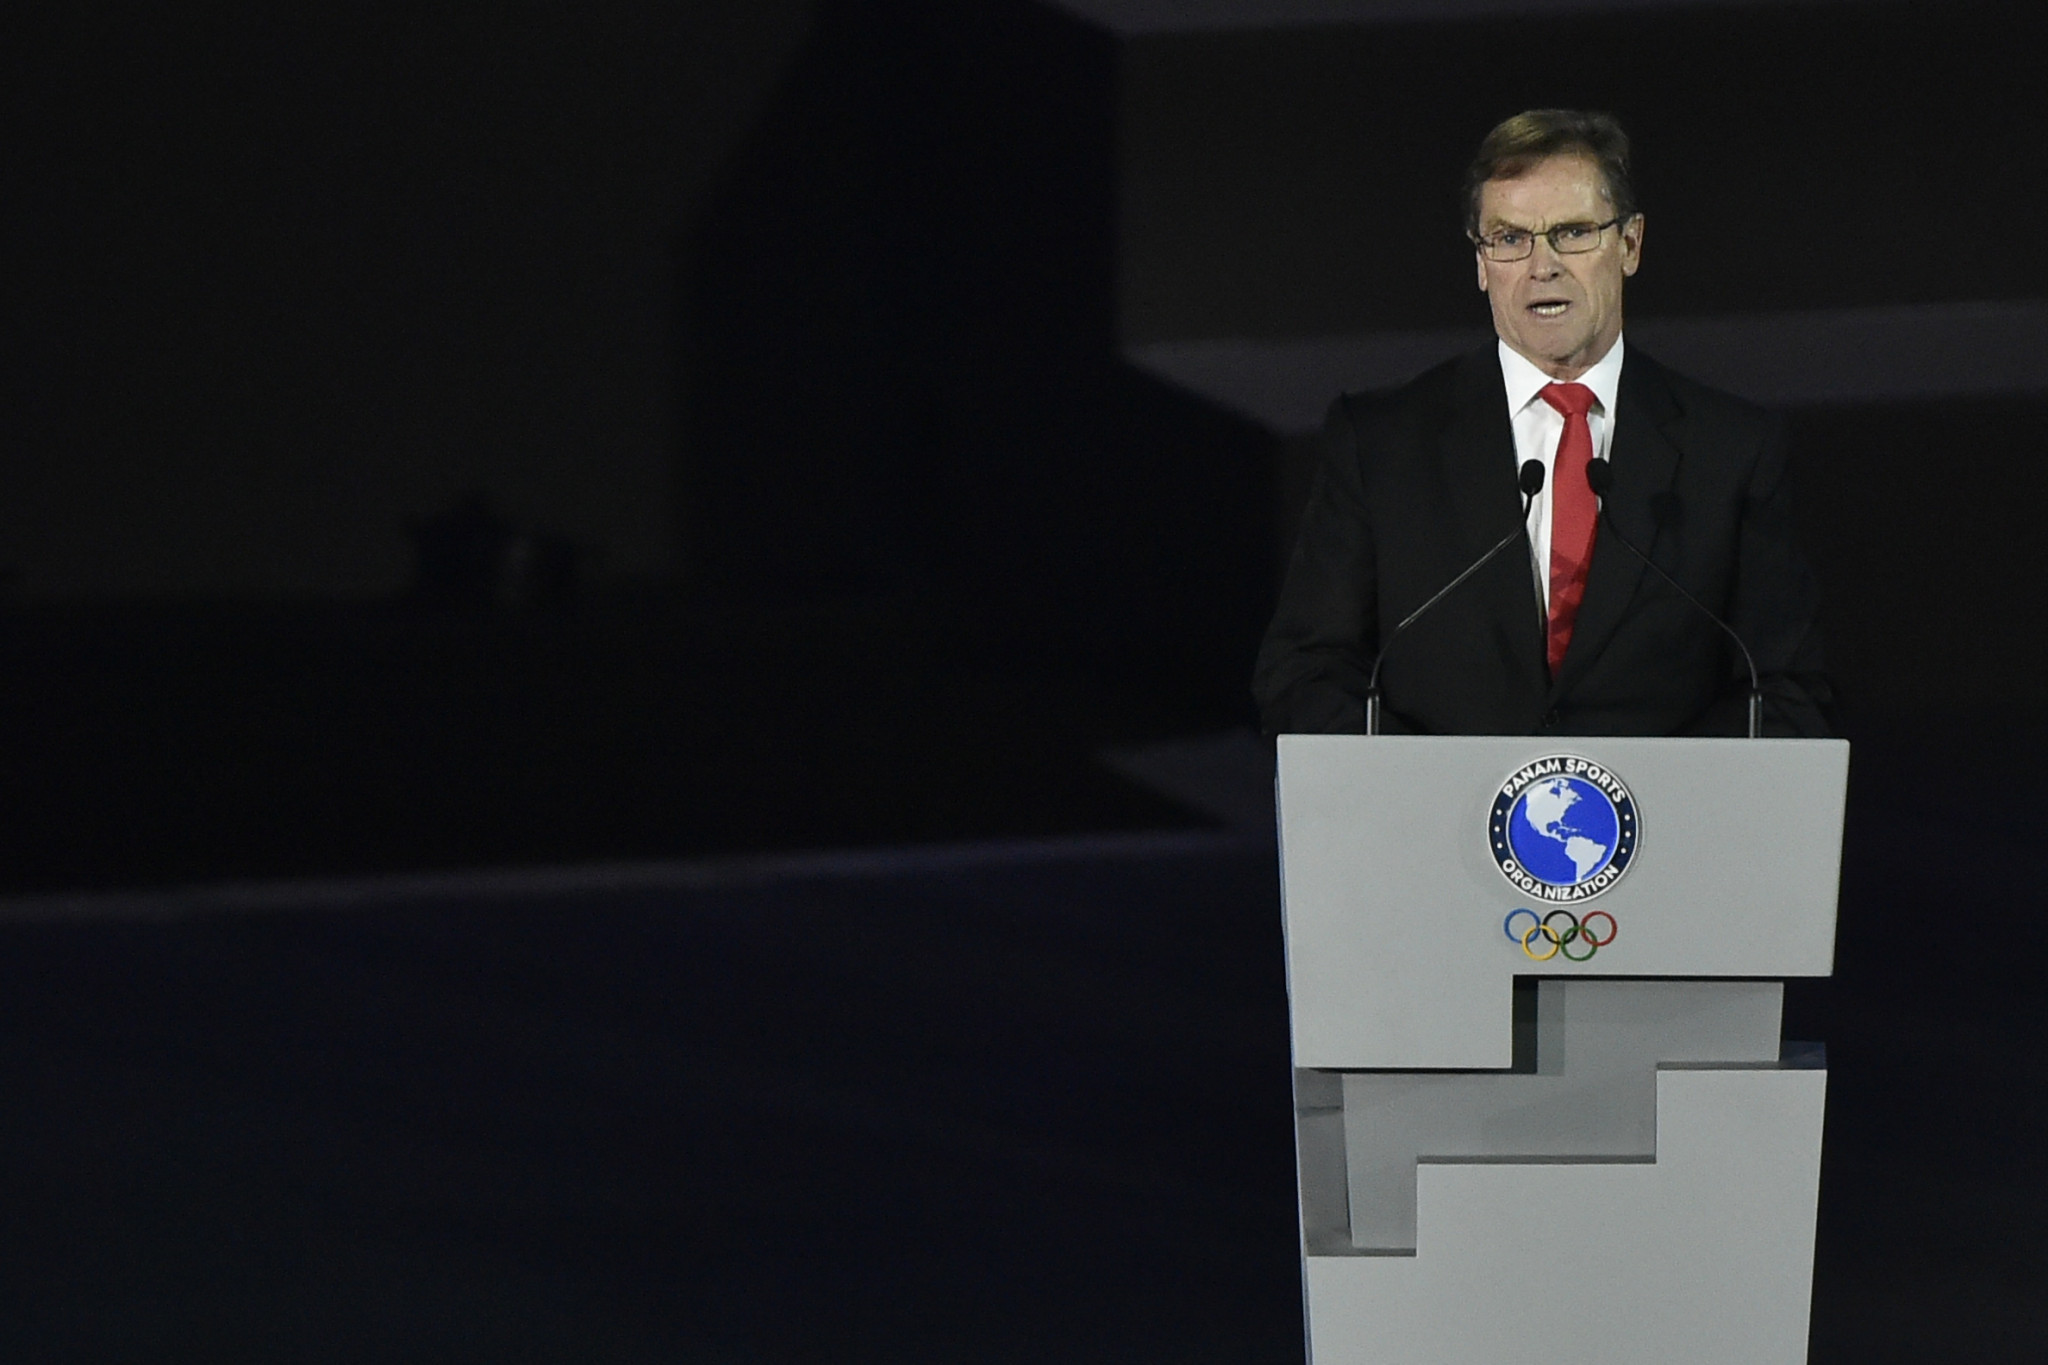 Lima 2019 President Neuhaus hails critical role of partnership with UK